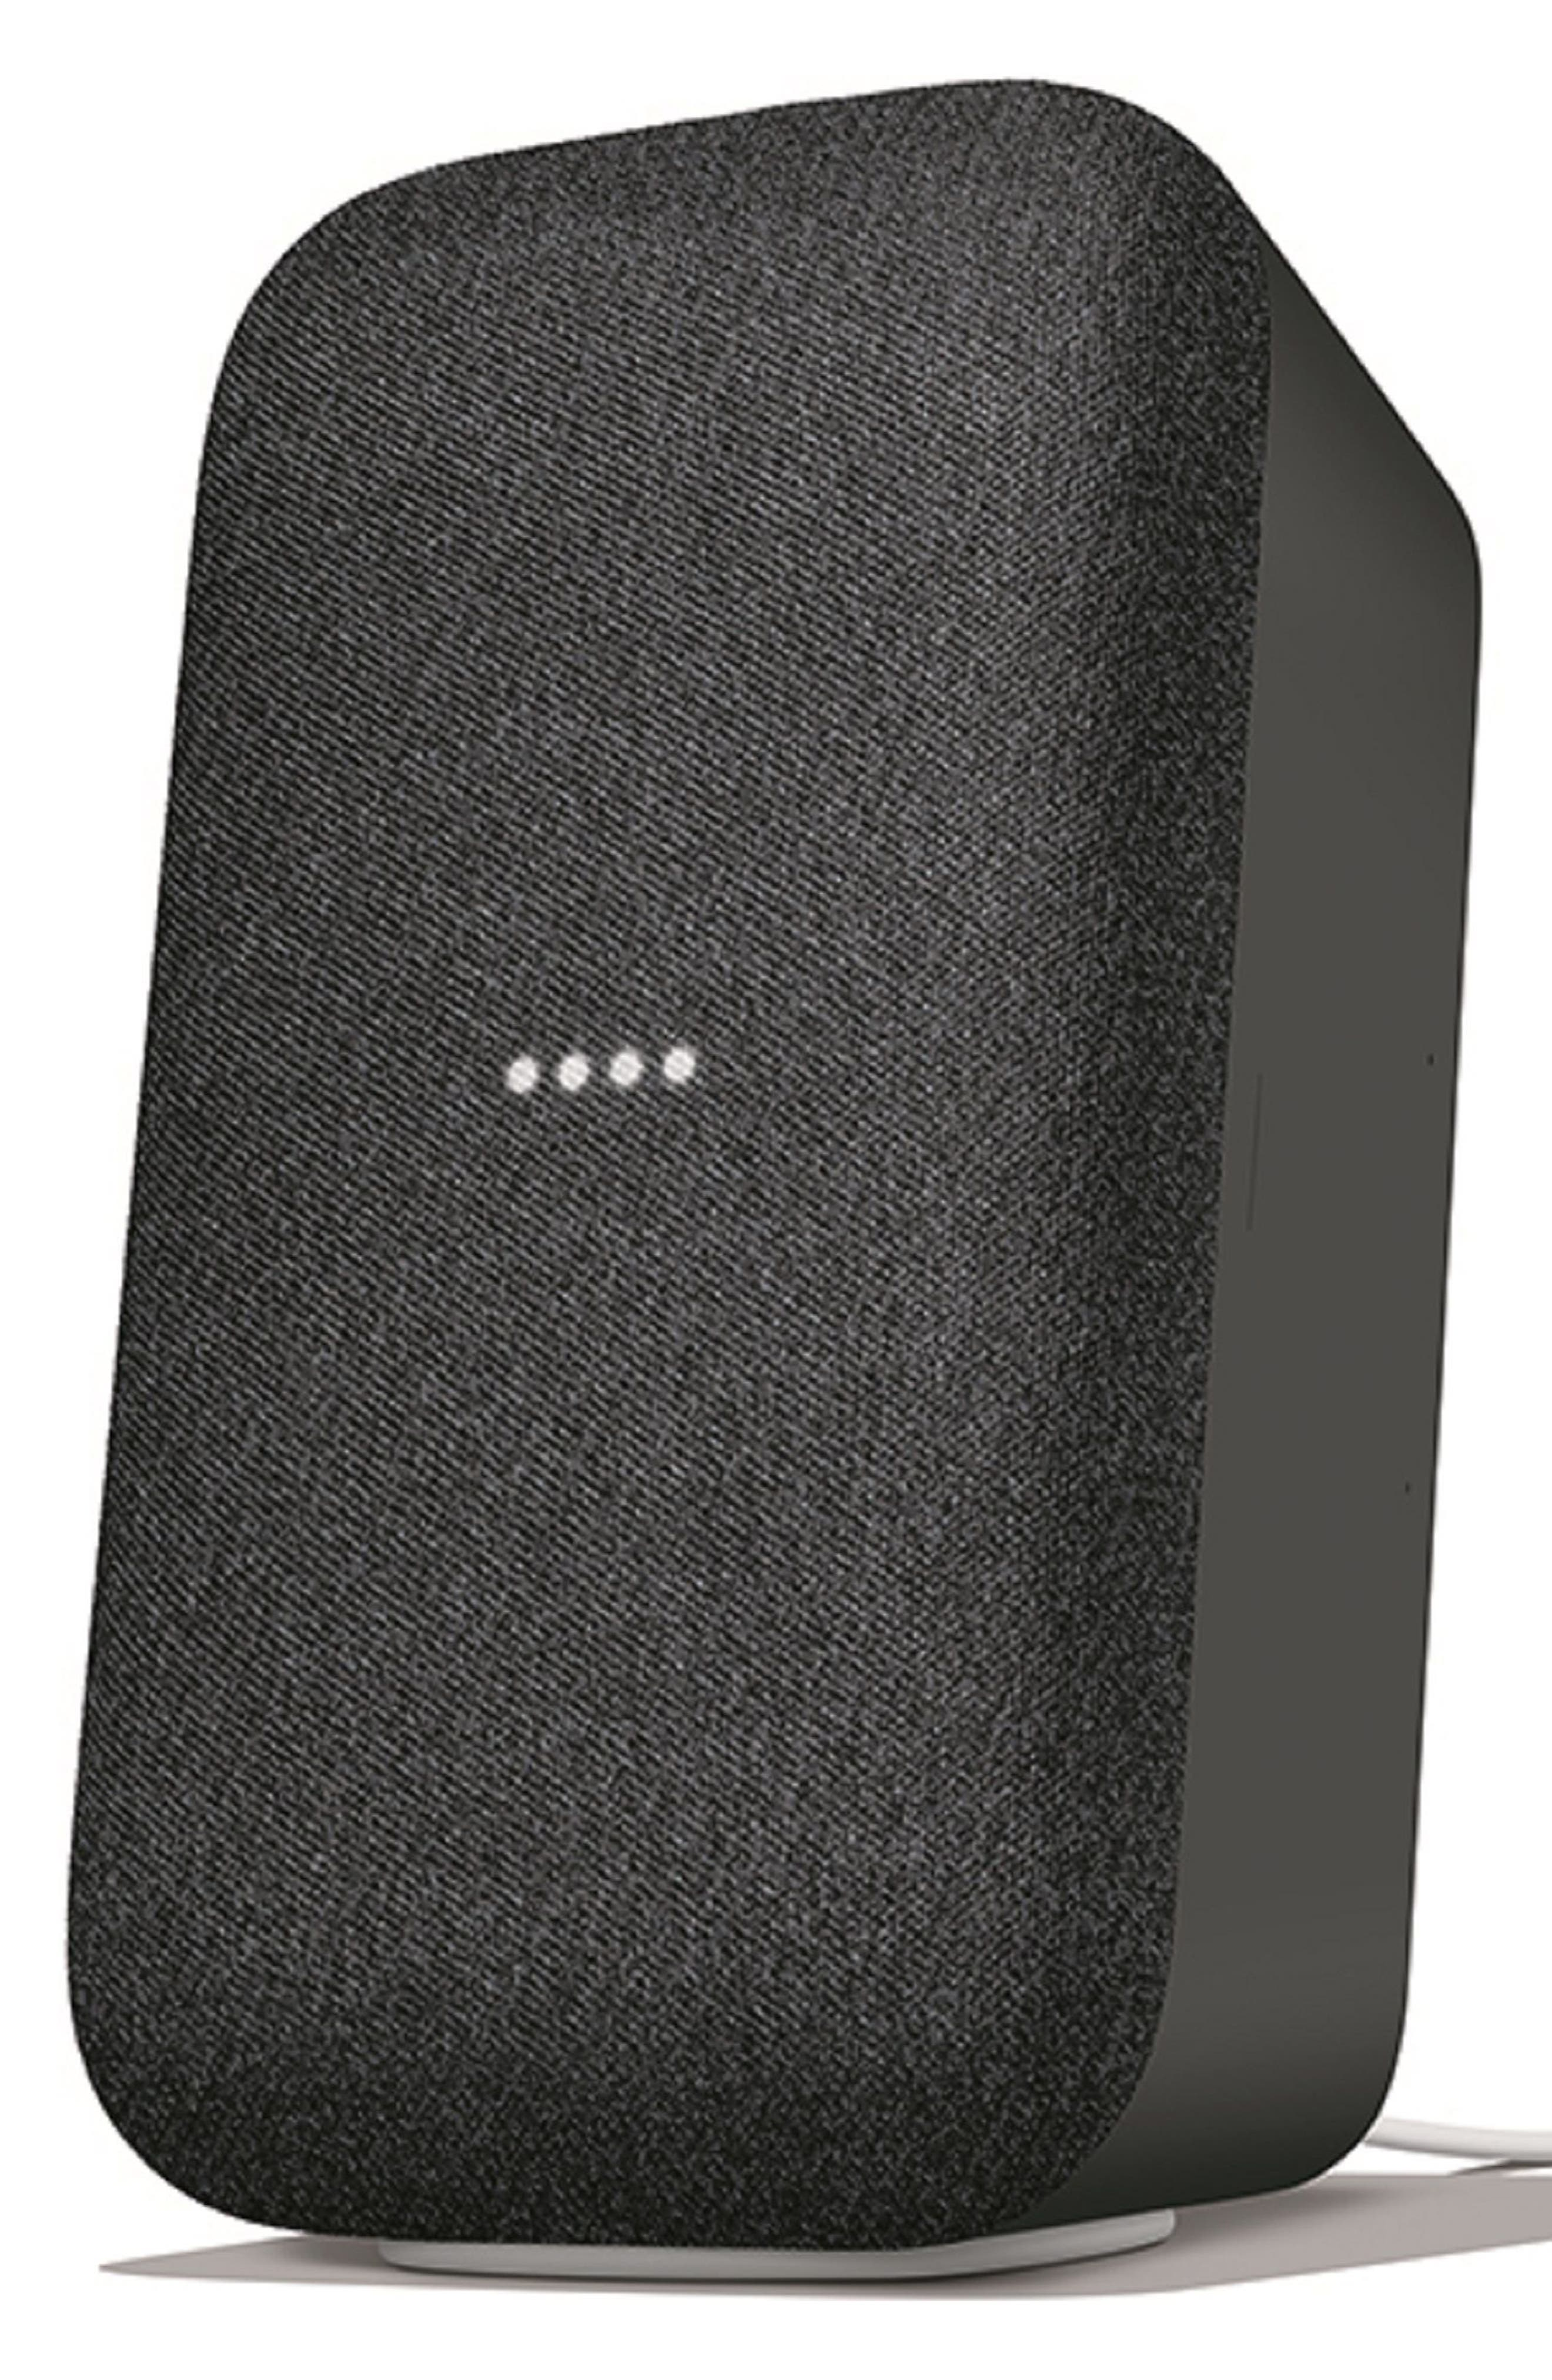 GOOGLE,                             Home Max Wireless Speaker,                             Alternate thumbnail 2, color,                             010